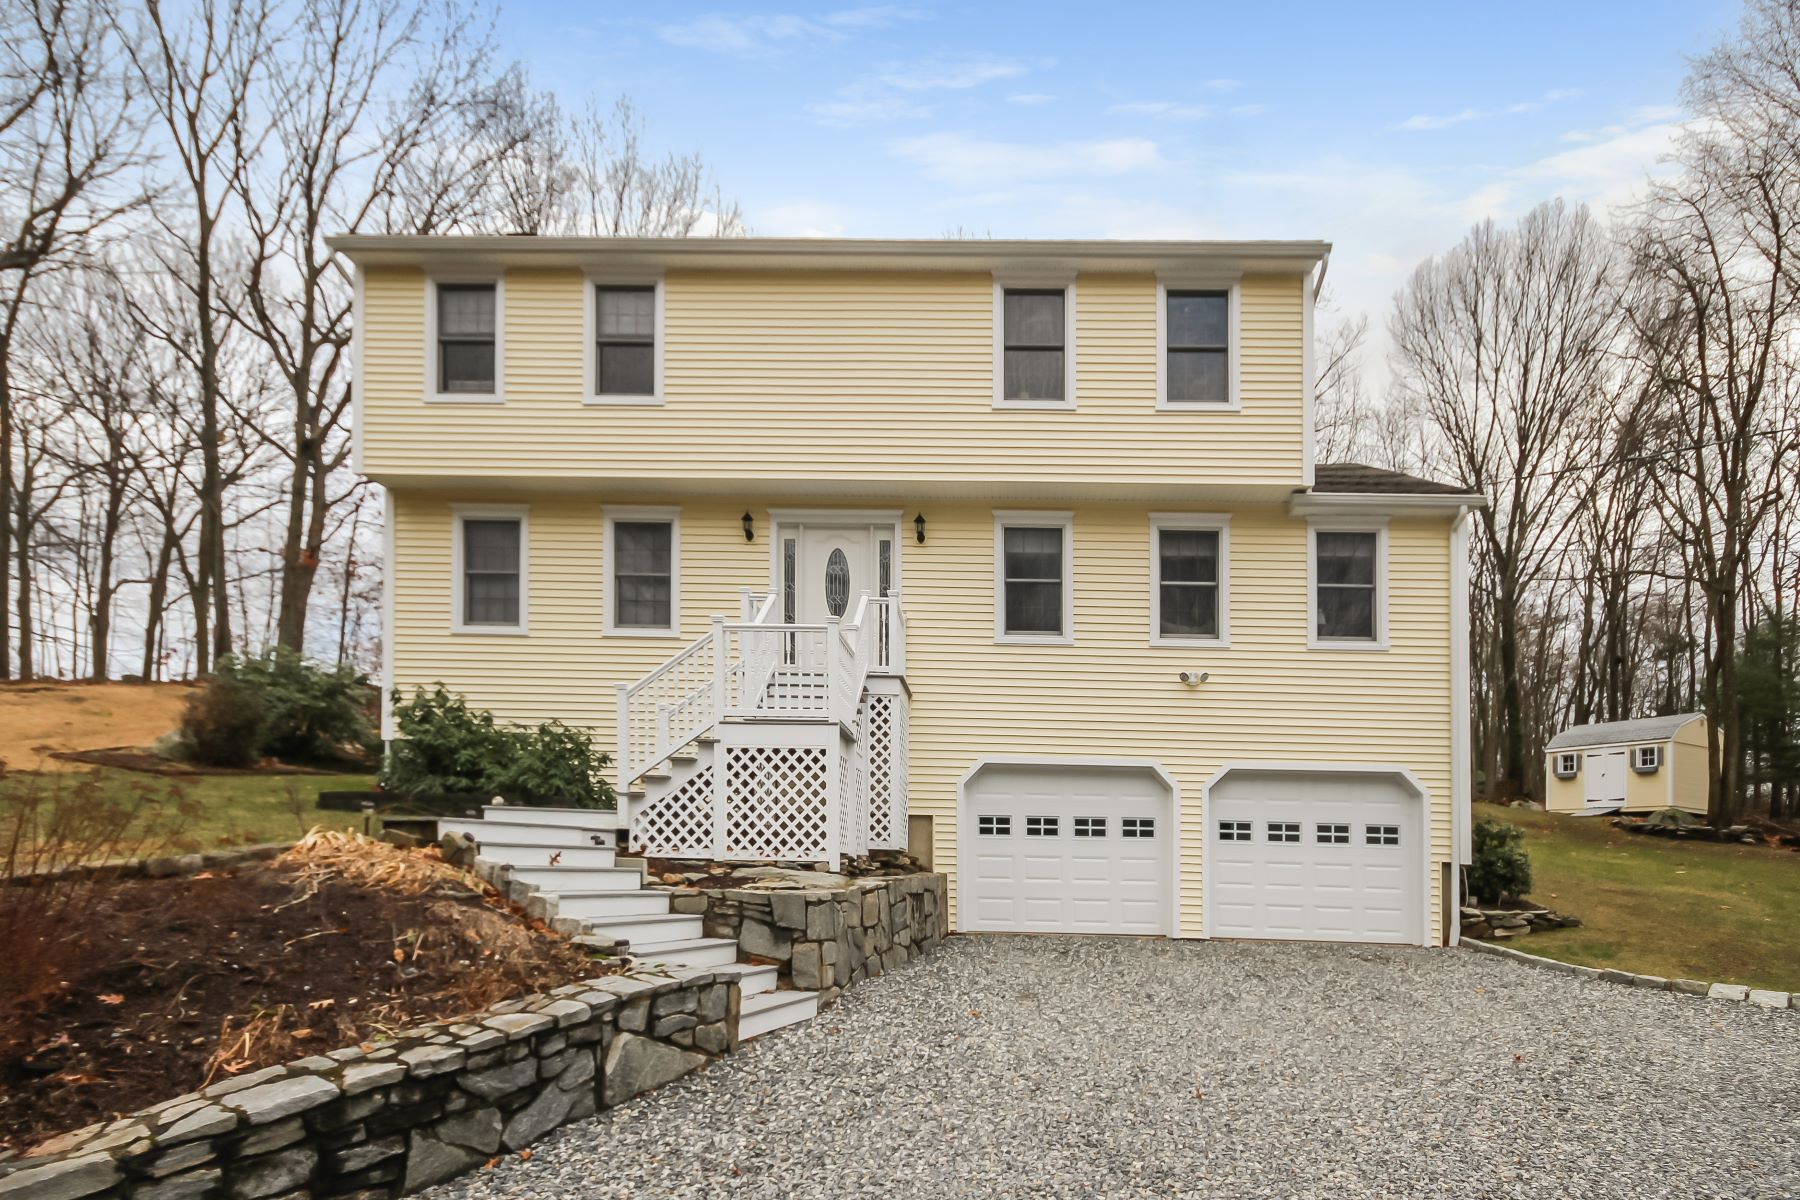 Single Family Home for Sale at Pride of Ownership Abounds 65 Morning Glory Terr Stratford, Connecticut 06614 United States